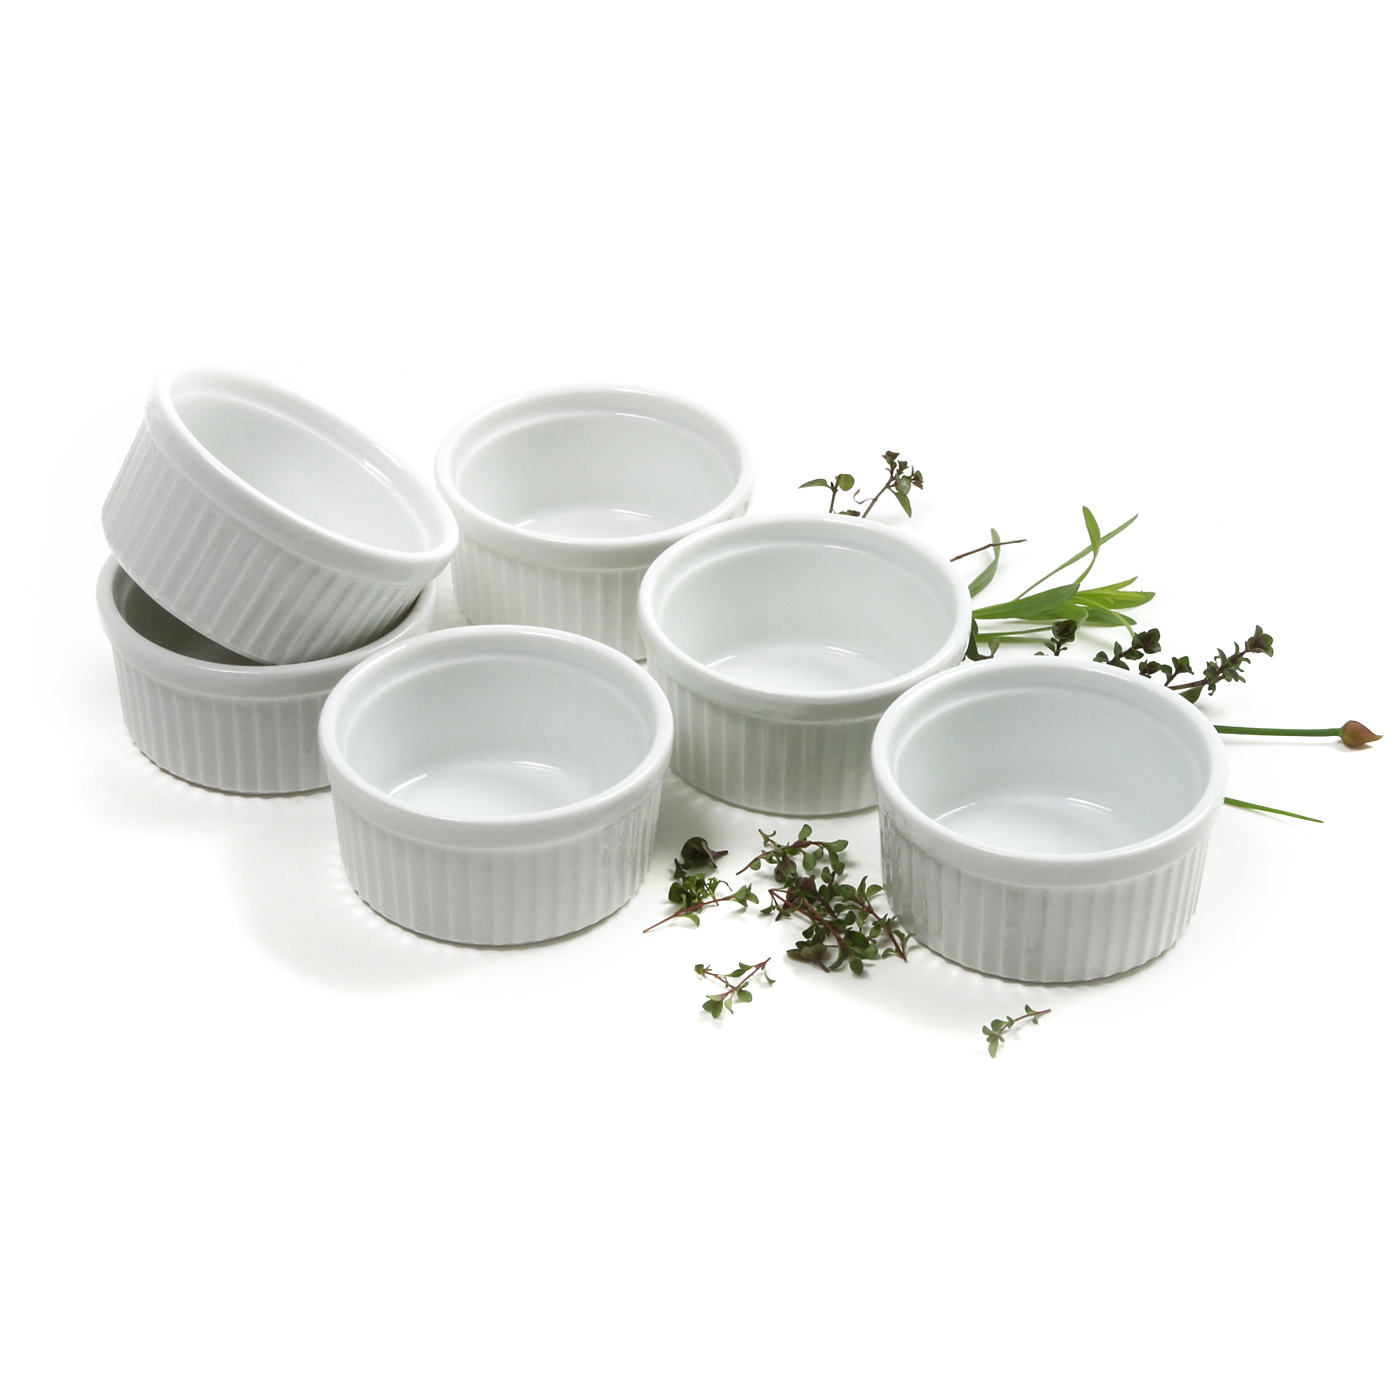 Norpro White Porcelain 3 Ounce Souffle Ramekin, Set of 6